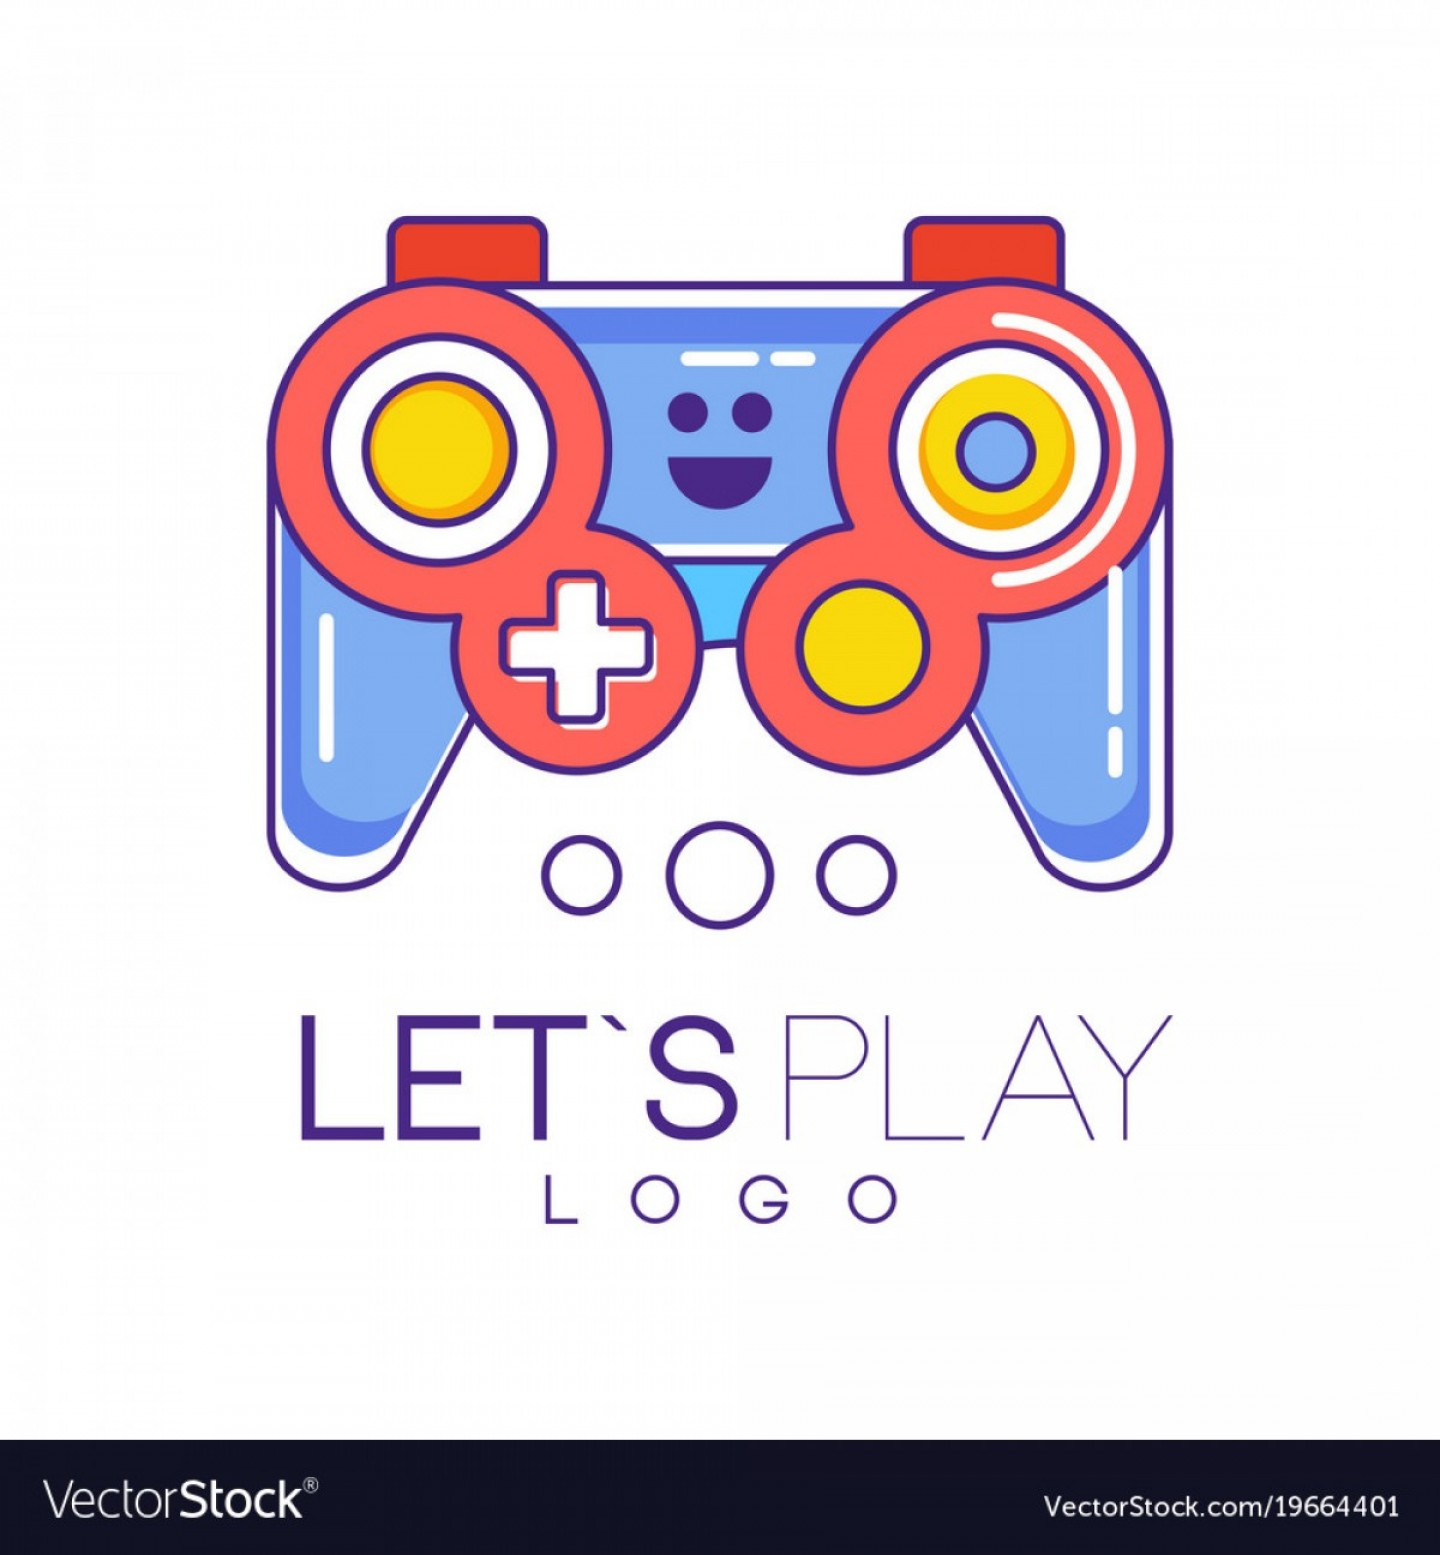 Xbox Game Controller Vector: Xbox Gamepad Logo Design In Line Style With Red Vector